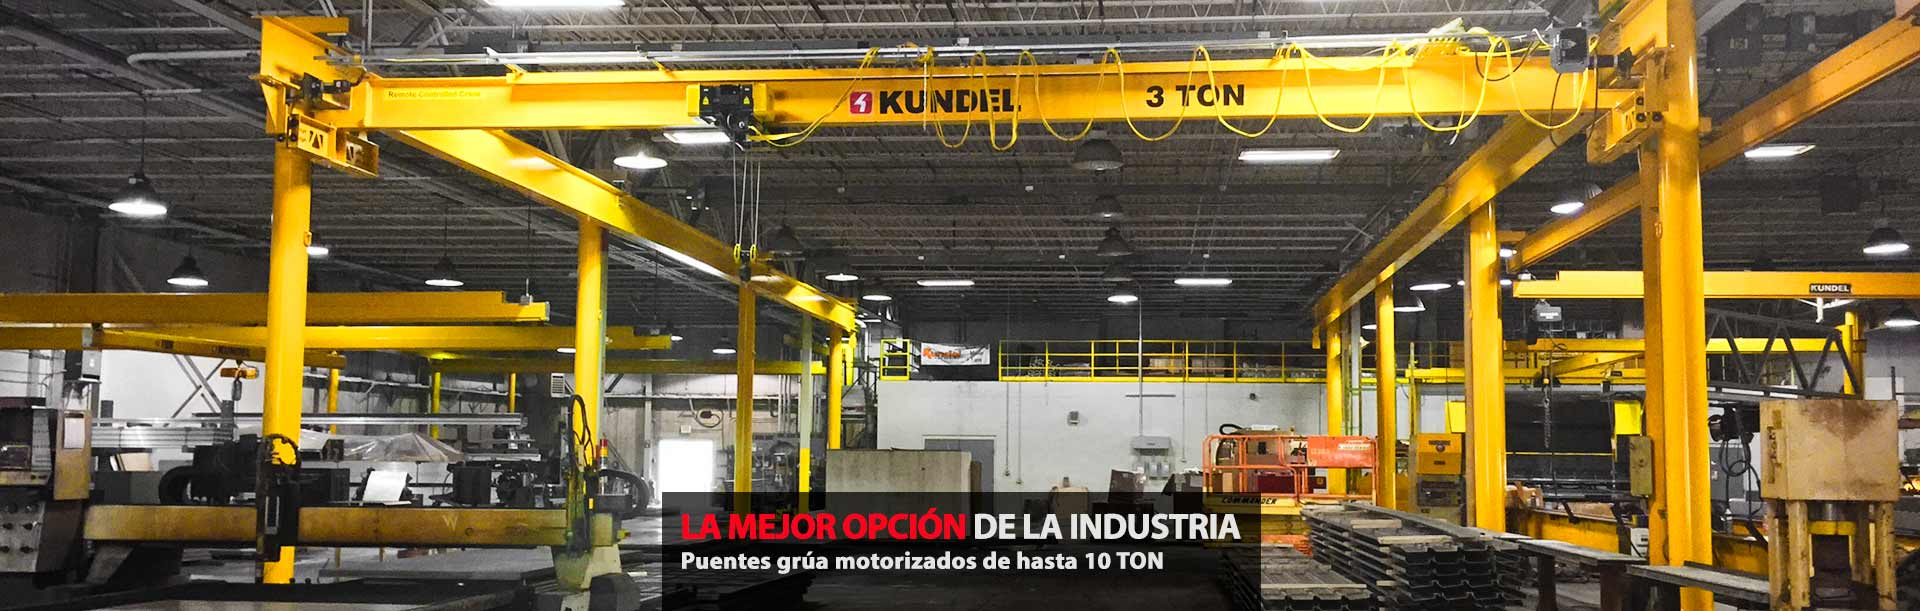 https://kundelcranes.com/sites/default/files/revslider/image/KundelCranes-HomeSlider-Industry-Top-Choice-es.jpg